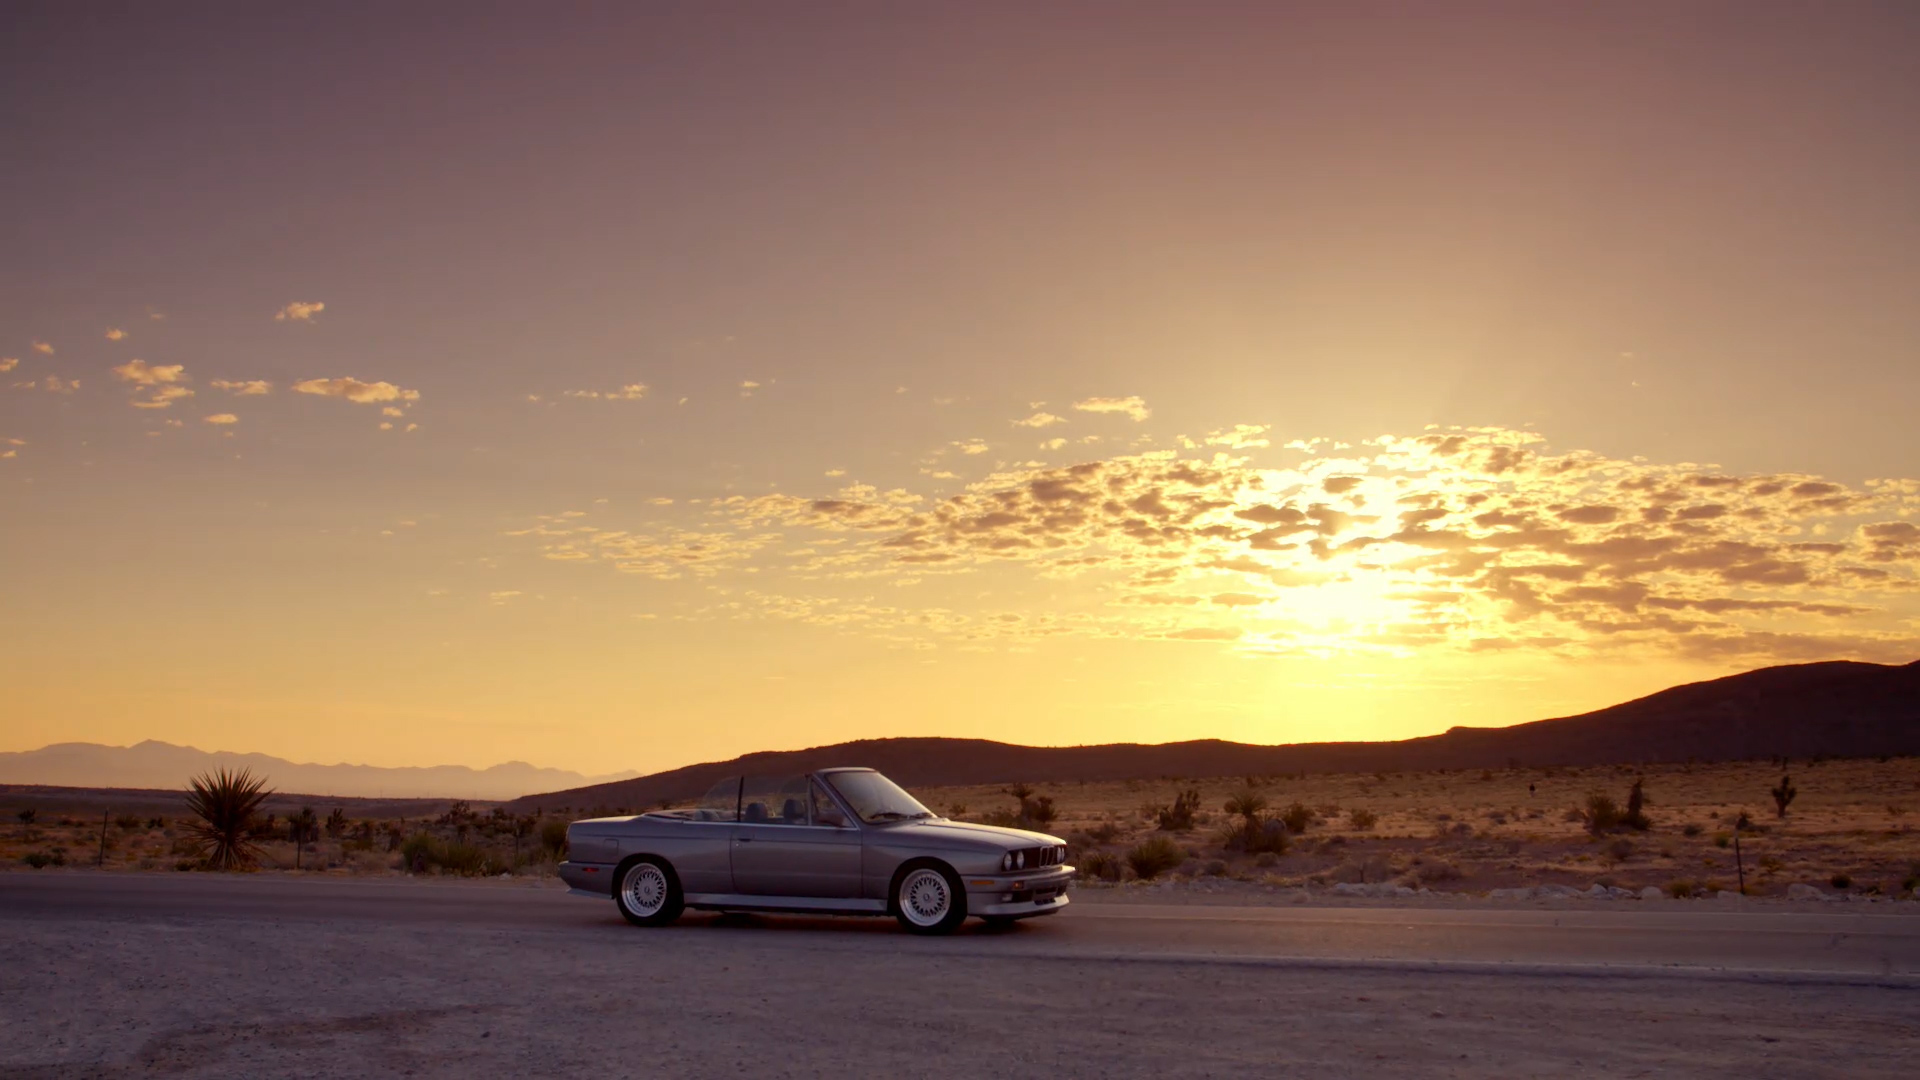 Sunrise - BMW 3 Series